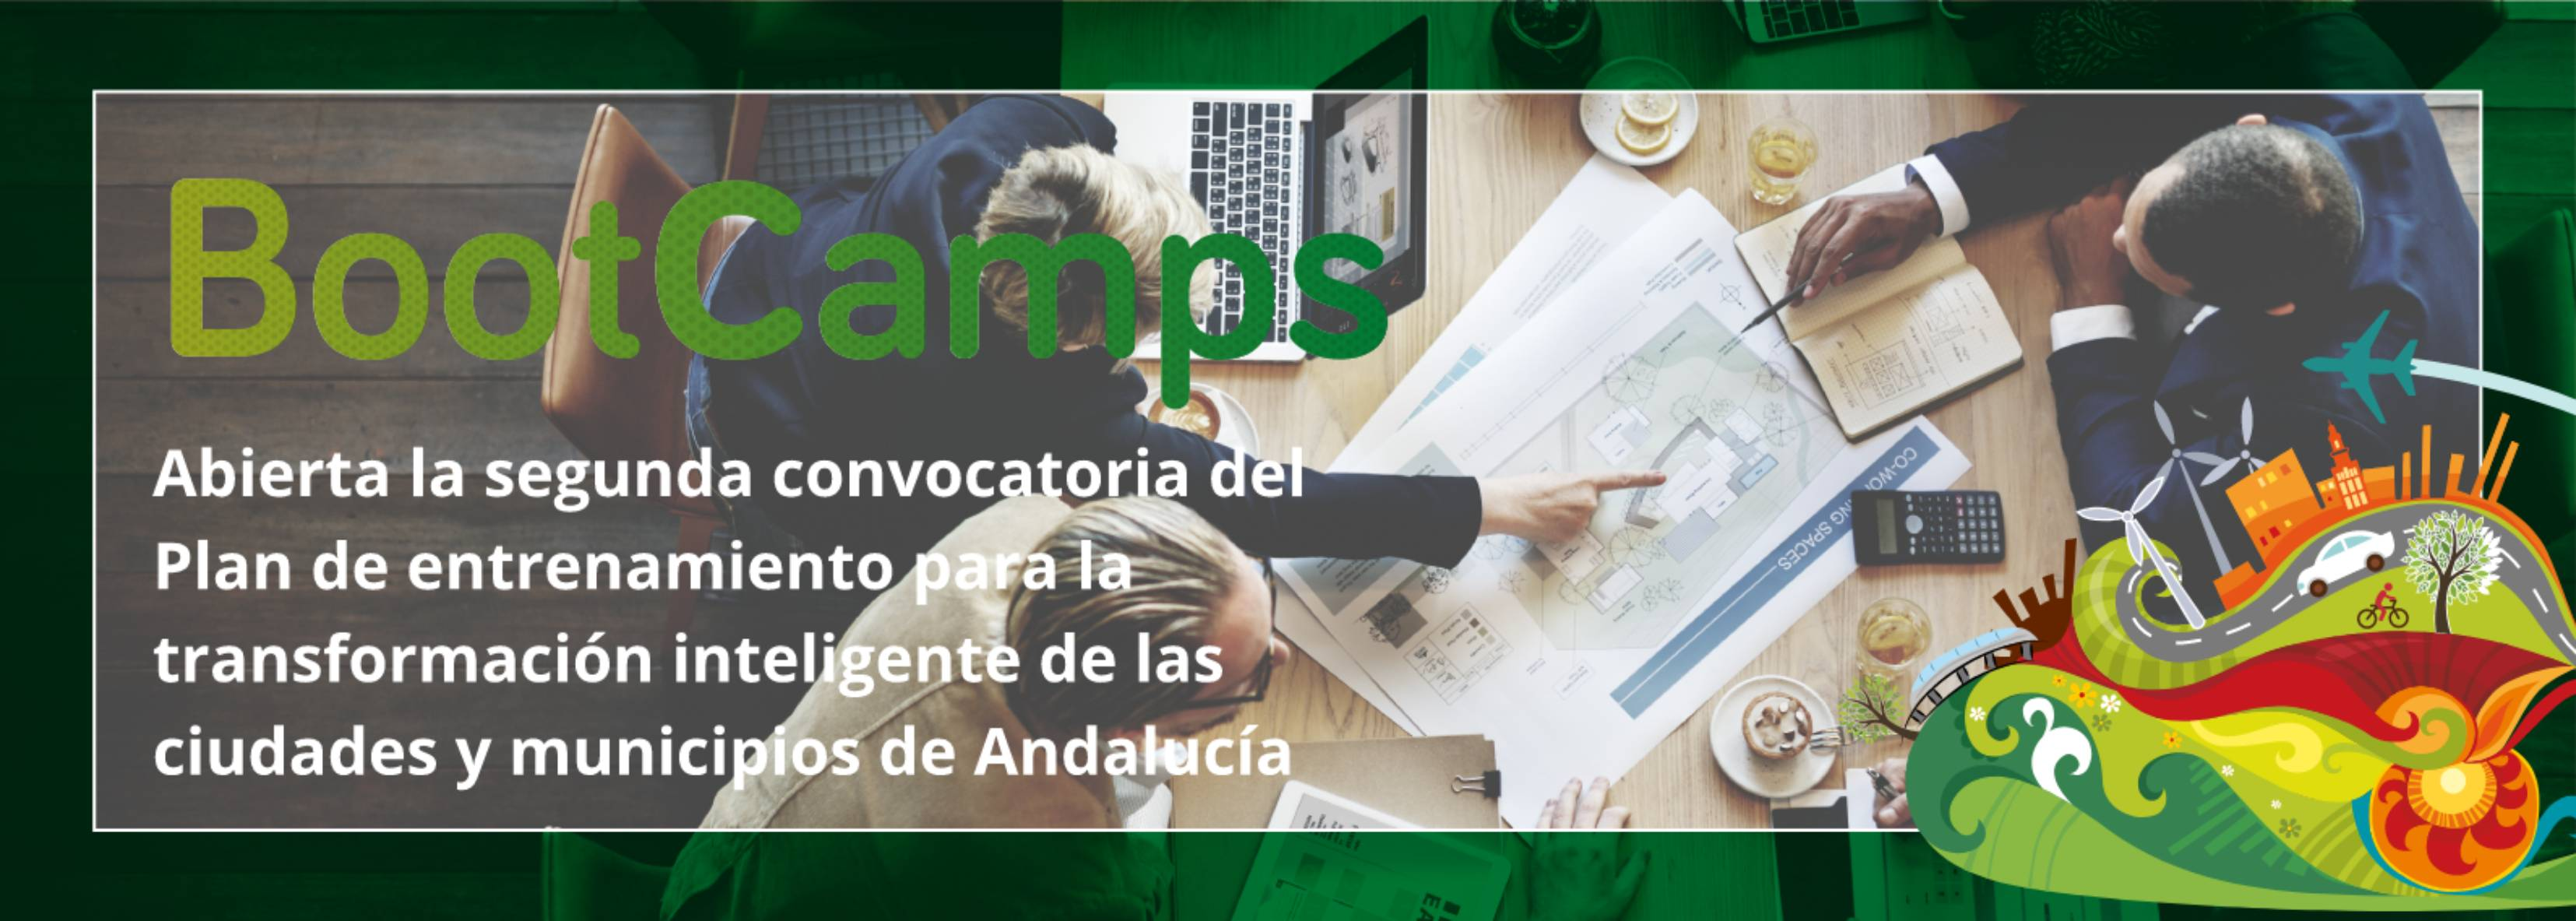 2ª Convocatoria BootCamps